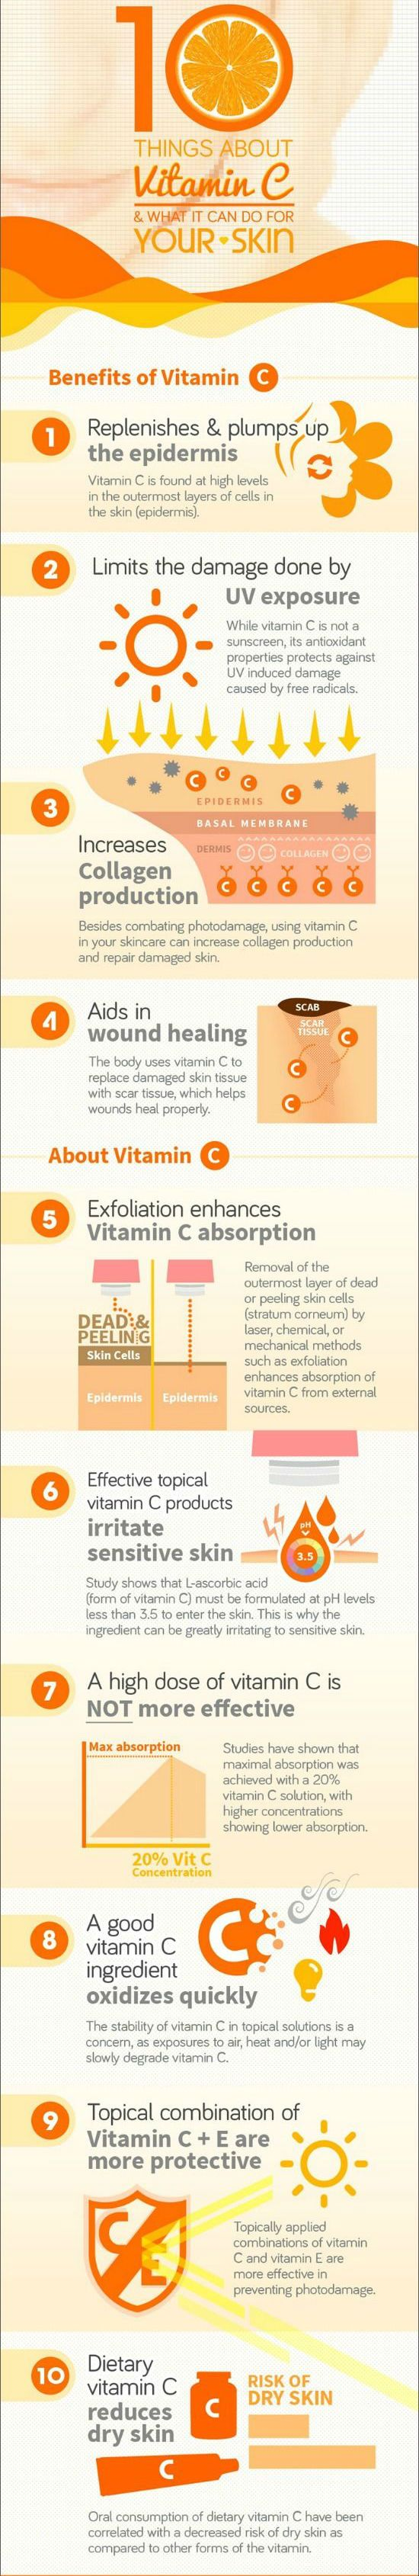 Vitamin C can help you say goodbye to your skin problems.Find more @ http://bit.ly/1QkUsNf #Imperialhealth #UK #Skincare #skincaretips #Dermatology